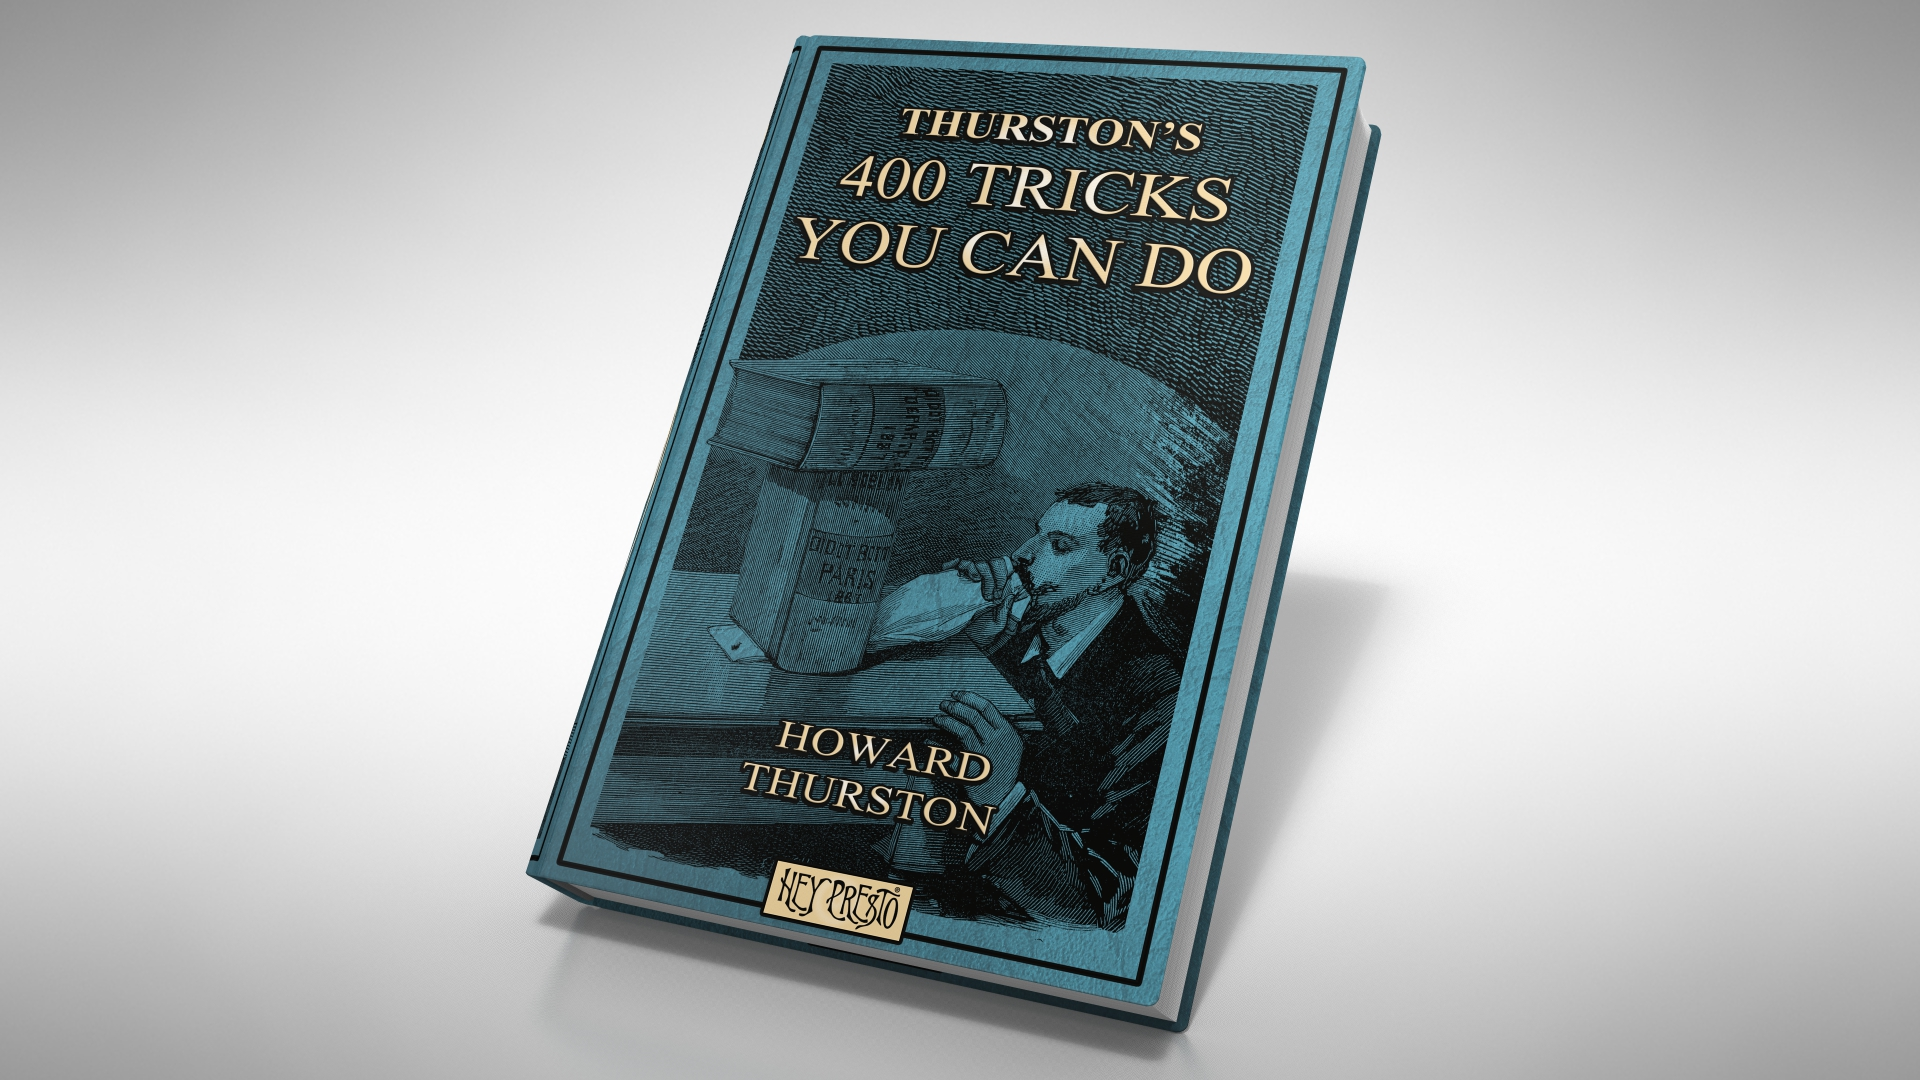 400 Tricks You Can Do by Thurston